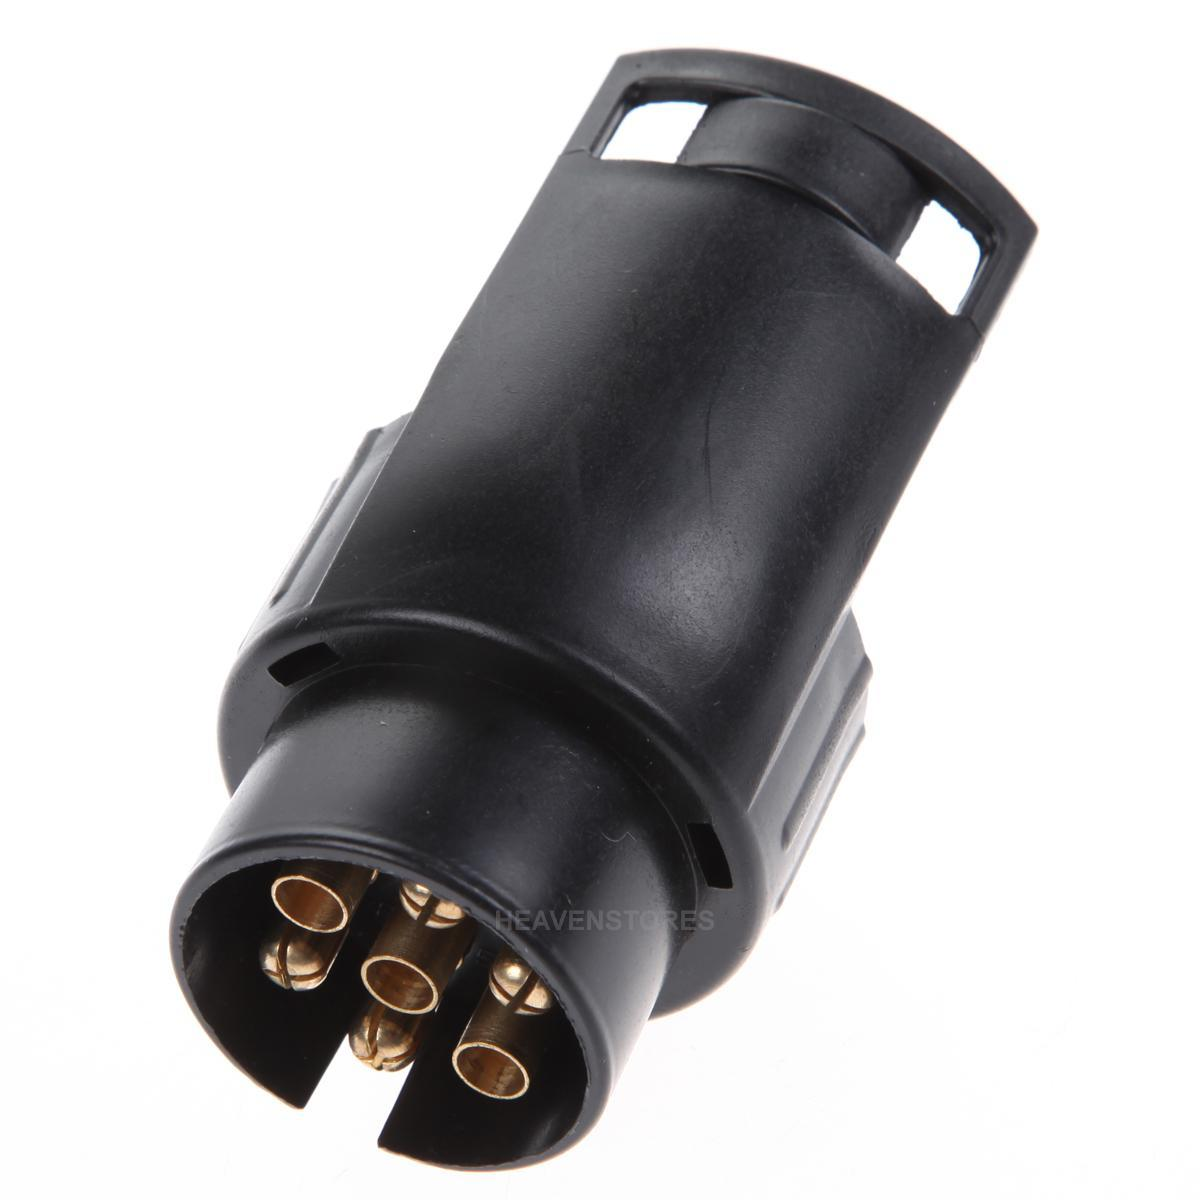 adapter 13 auf 7 polig anh nger pkw auto stecker kurzadapter steckdose neu ebay. Black Bedroom Furniture Sets. Home Design Ideas